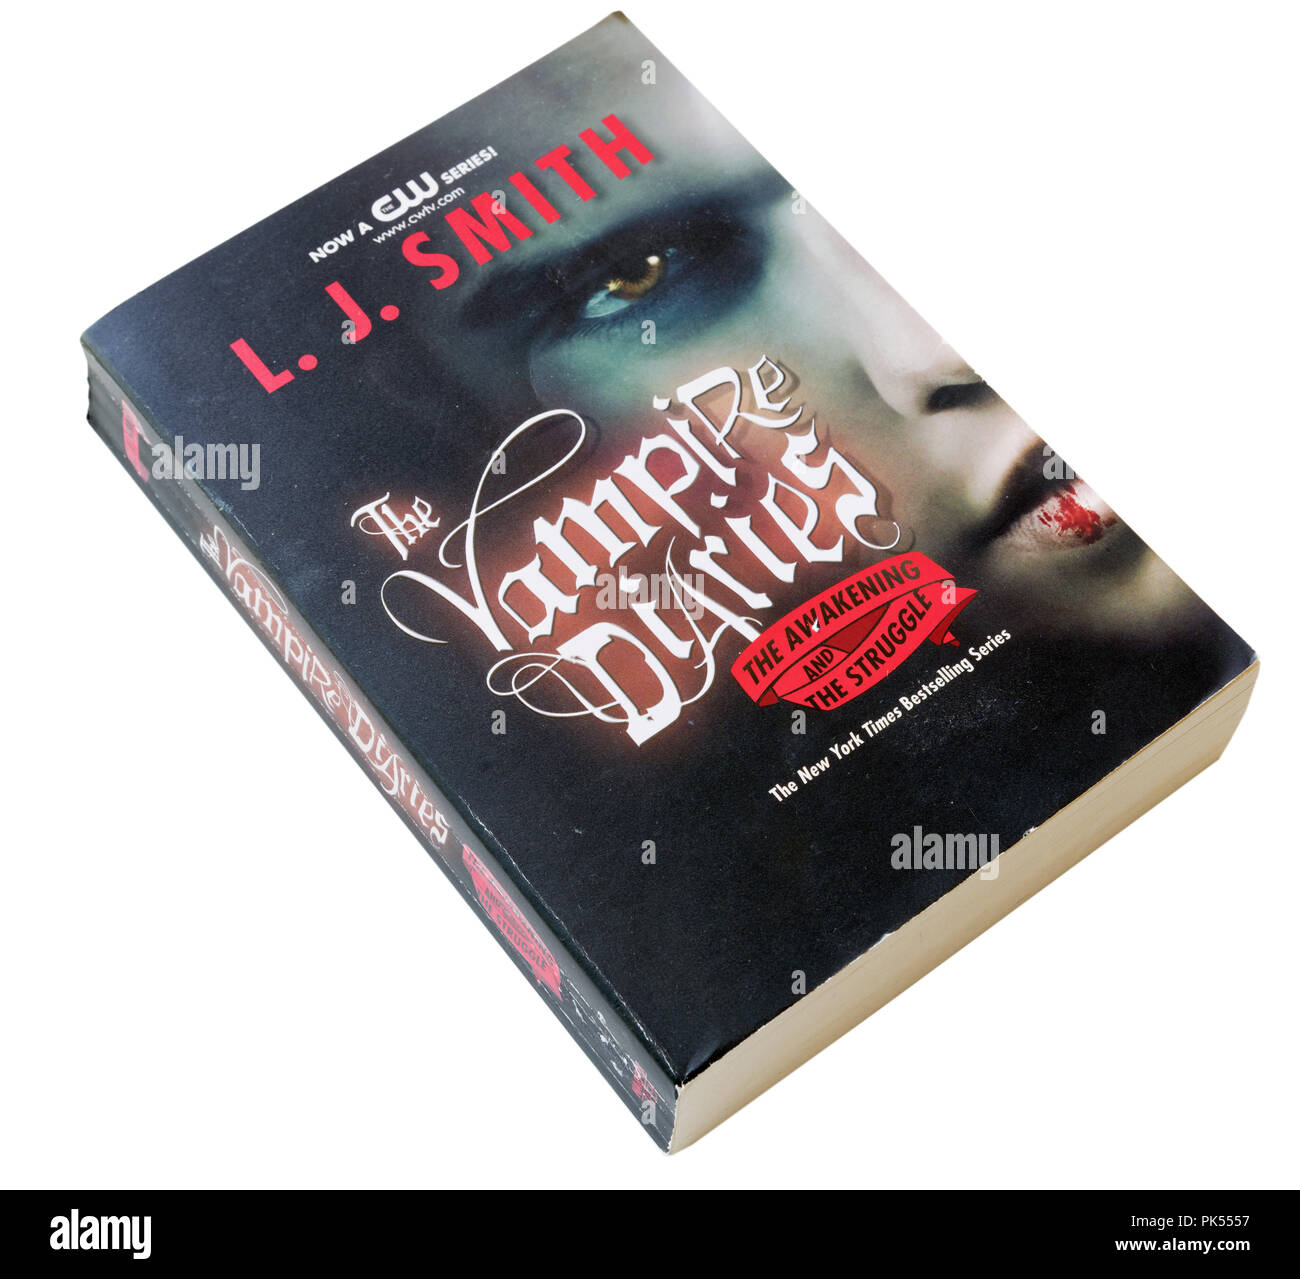 The Awakening and The Struggle, part of The Vampire Diaries by LJ Smith - Stock Image